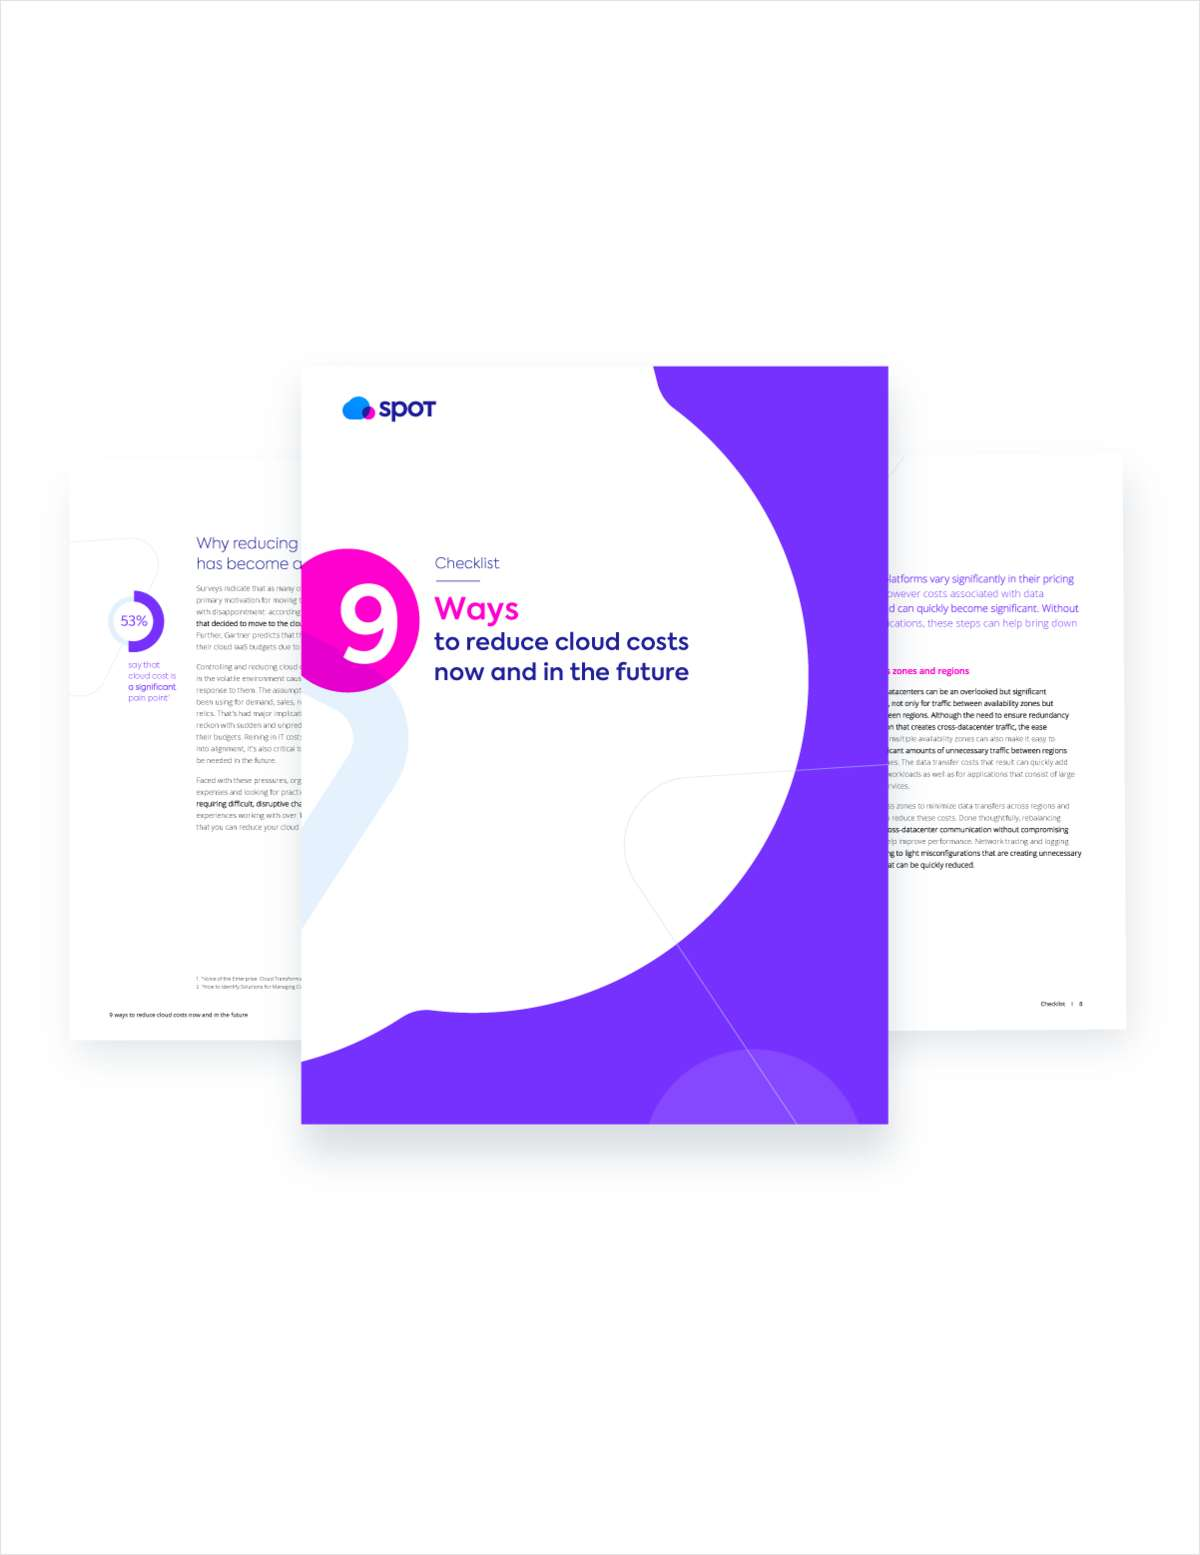 Ebook: 9 Ways to Reduce Cloud Costs Now and in the Future